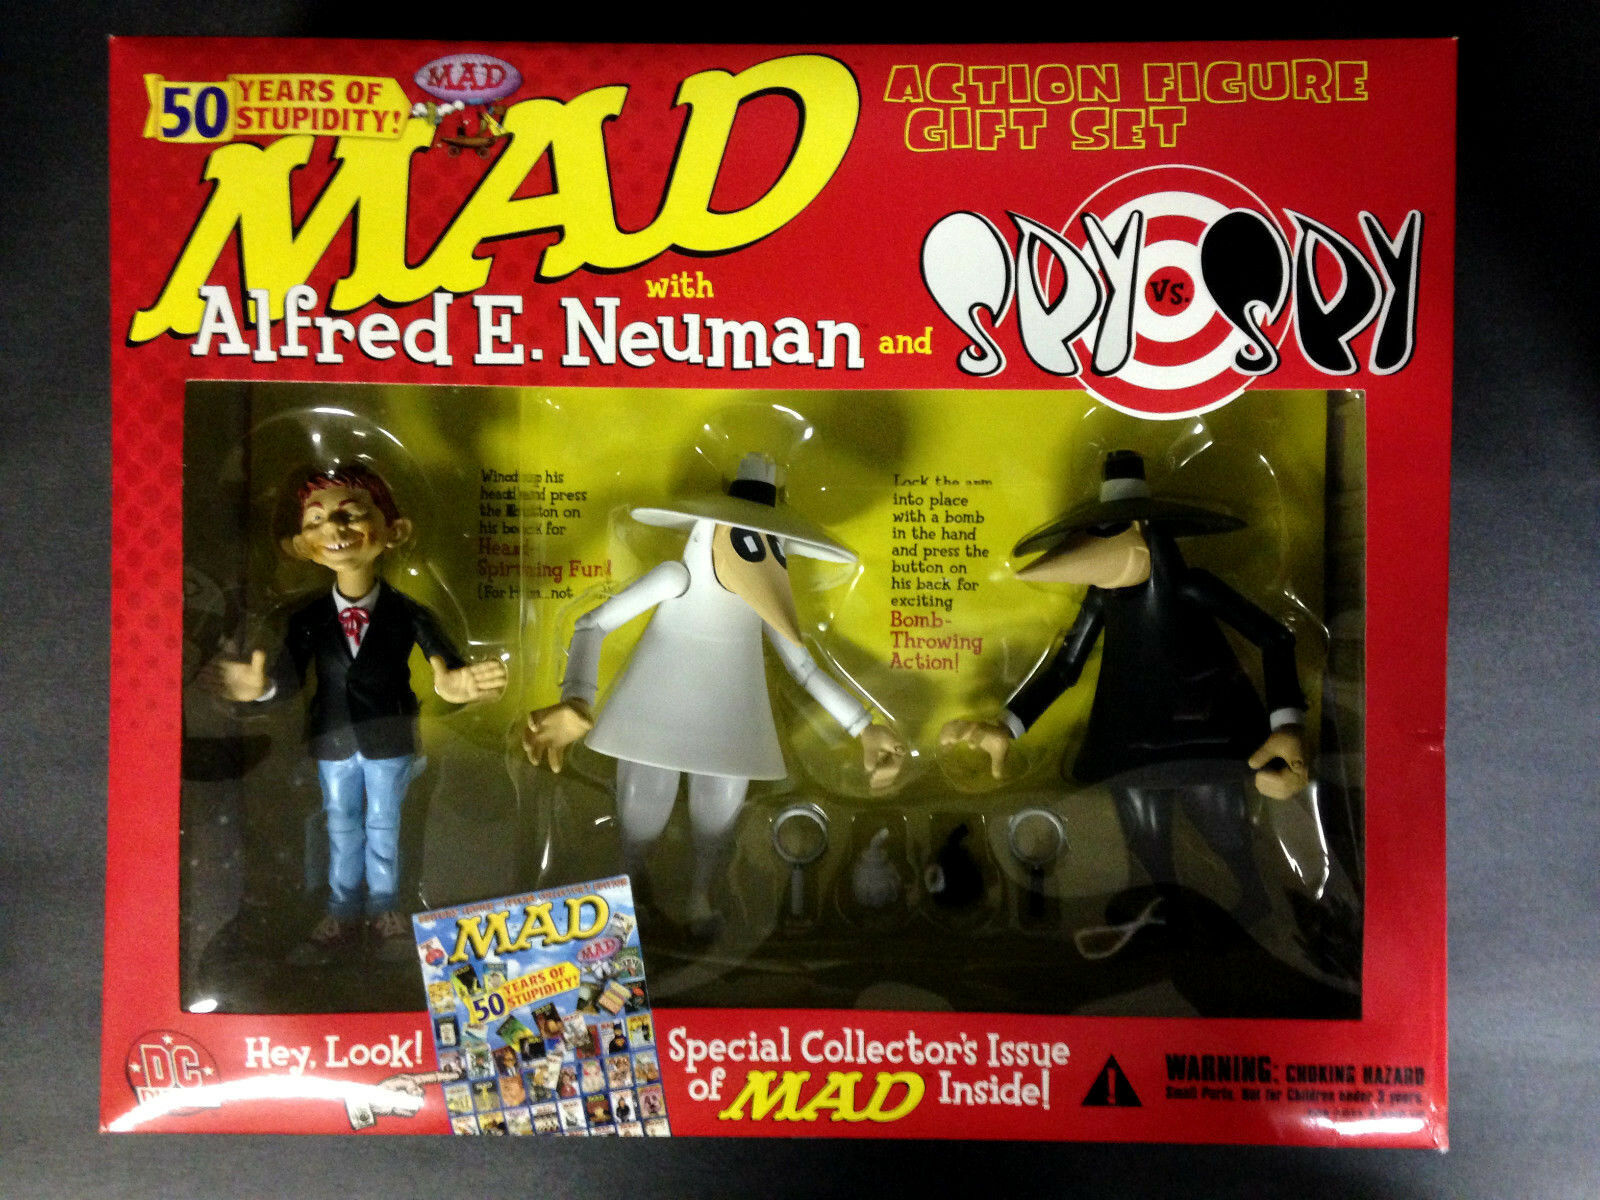 2002 DC DIRECT MAD ALFROT E. NEUMAN AND SPY VS SPY ACTION FIGURE GIFT SET D49